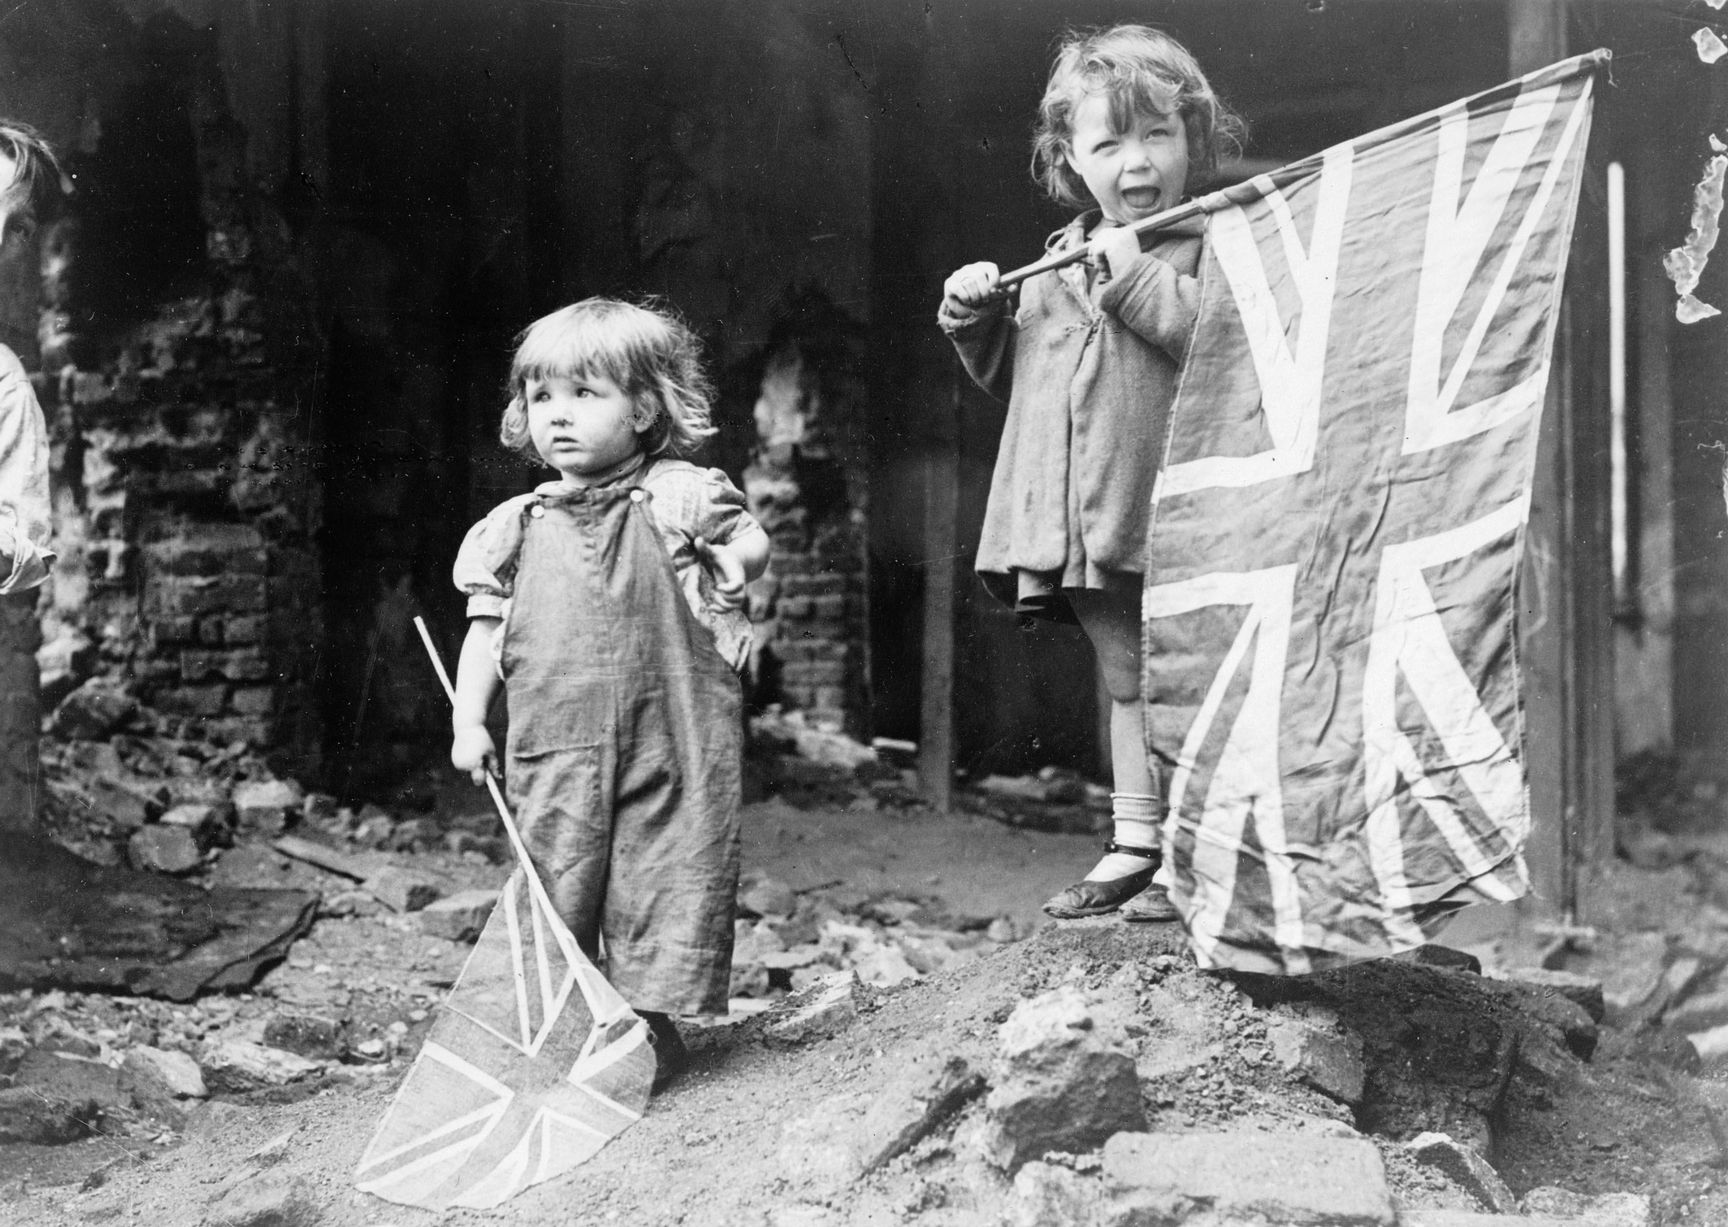 Two-small-girls-waving-their-flags-in-the-rubble-of-Battersea.jpg